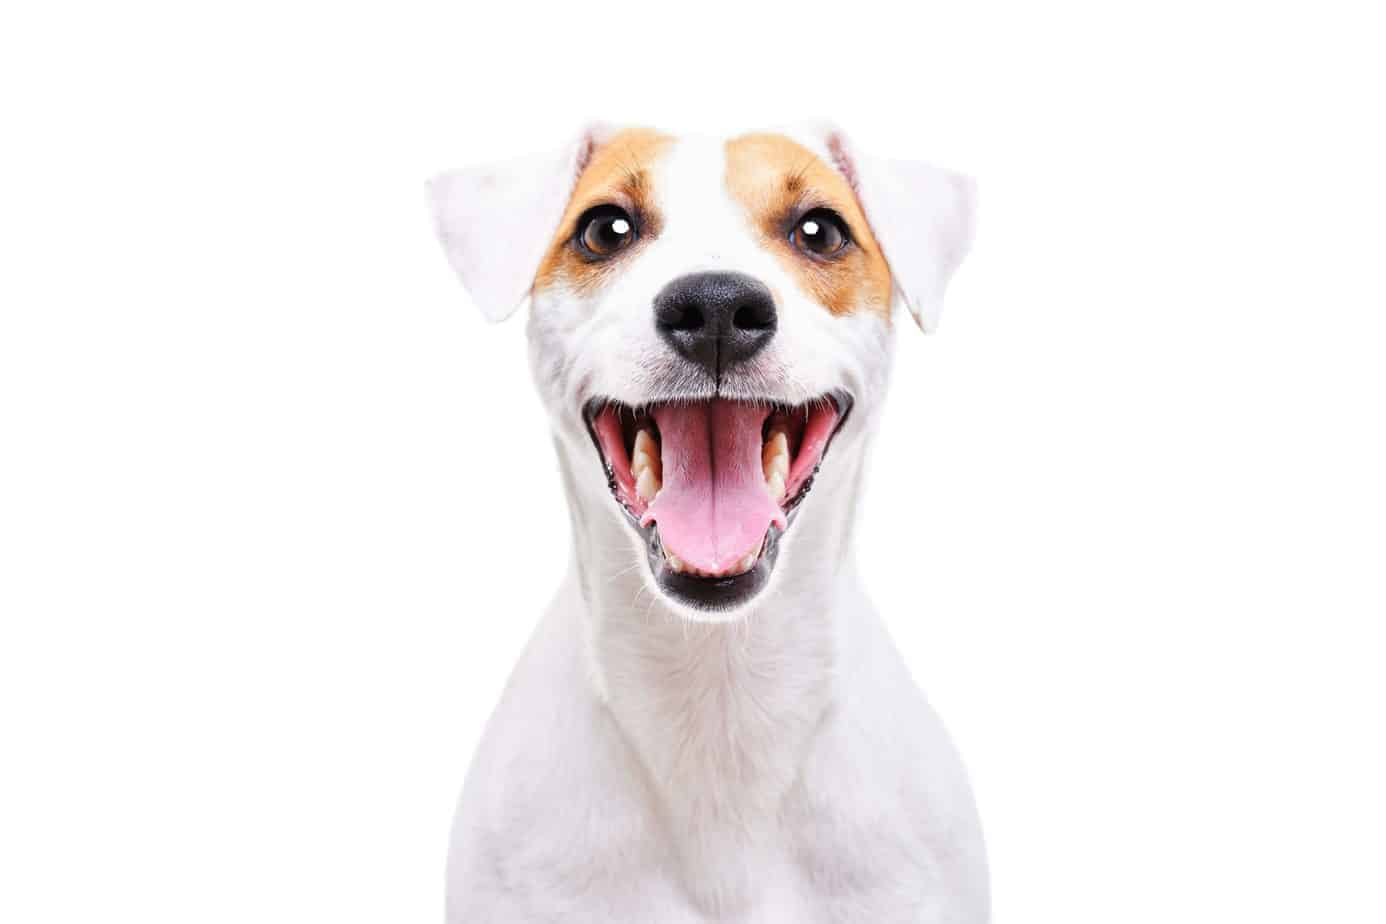 Smiling Jack Russell Terrier. Signs your dog is healthy include high energy level, a healthy appetite, a shiny, full coat, fresh breath, and clean teeth, and bright eyes.